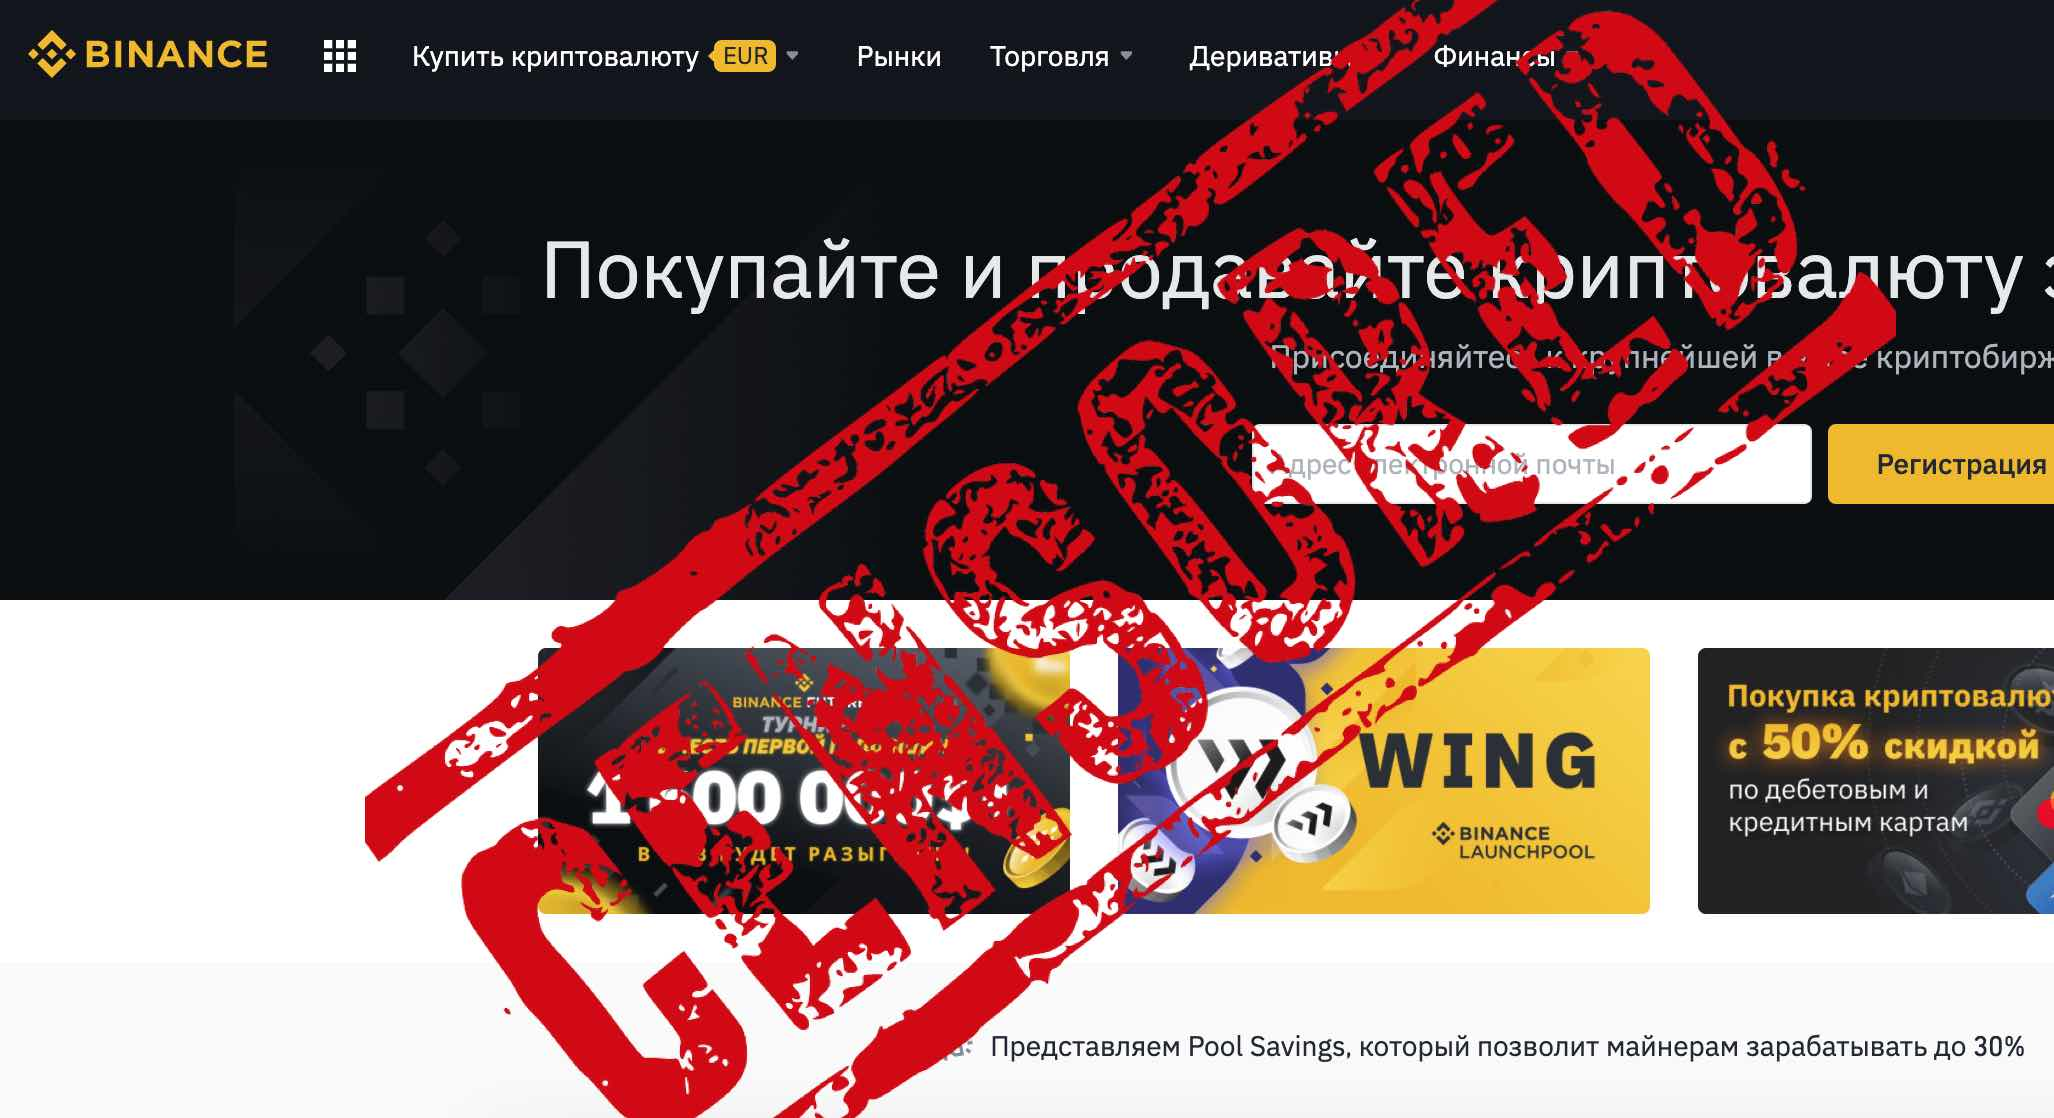 censura a Binance en Rusia